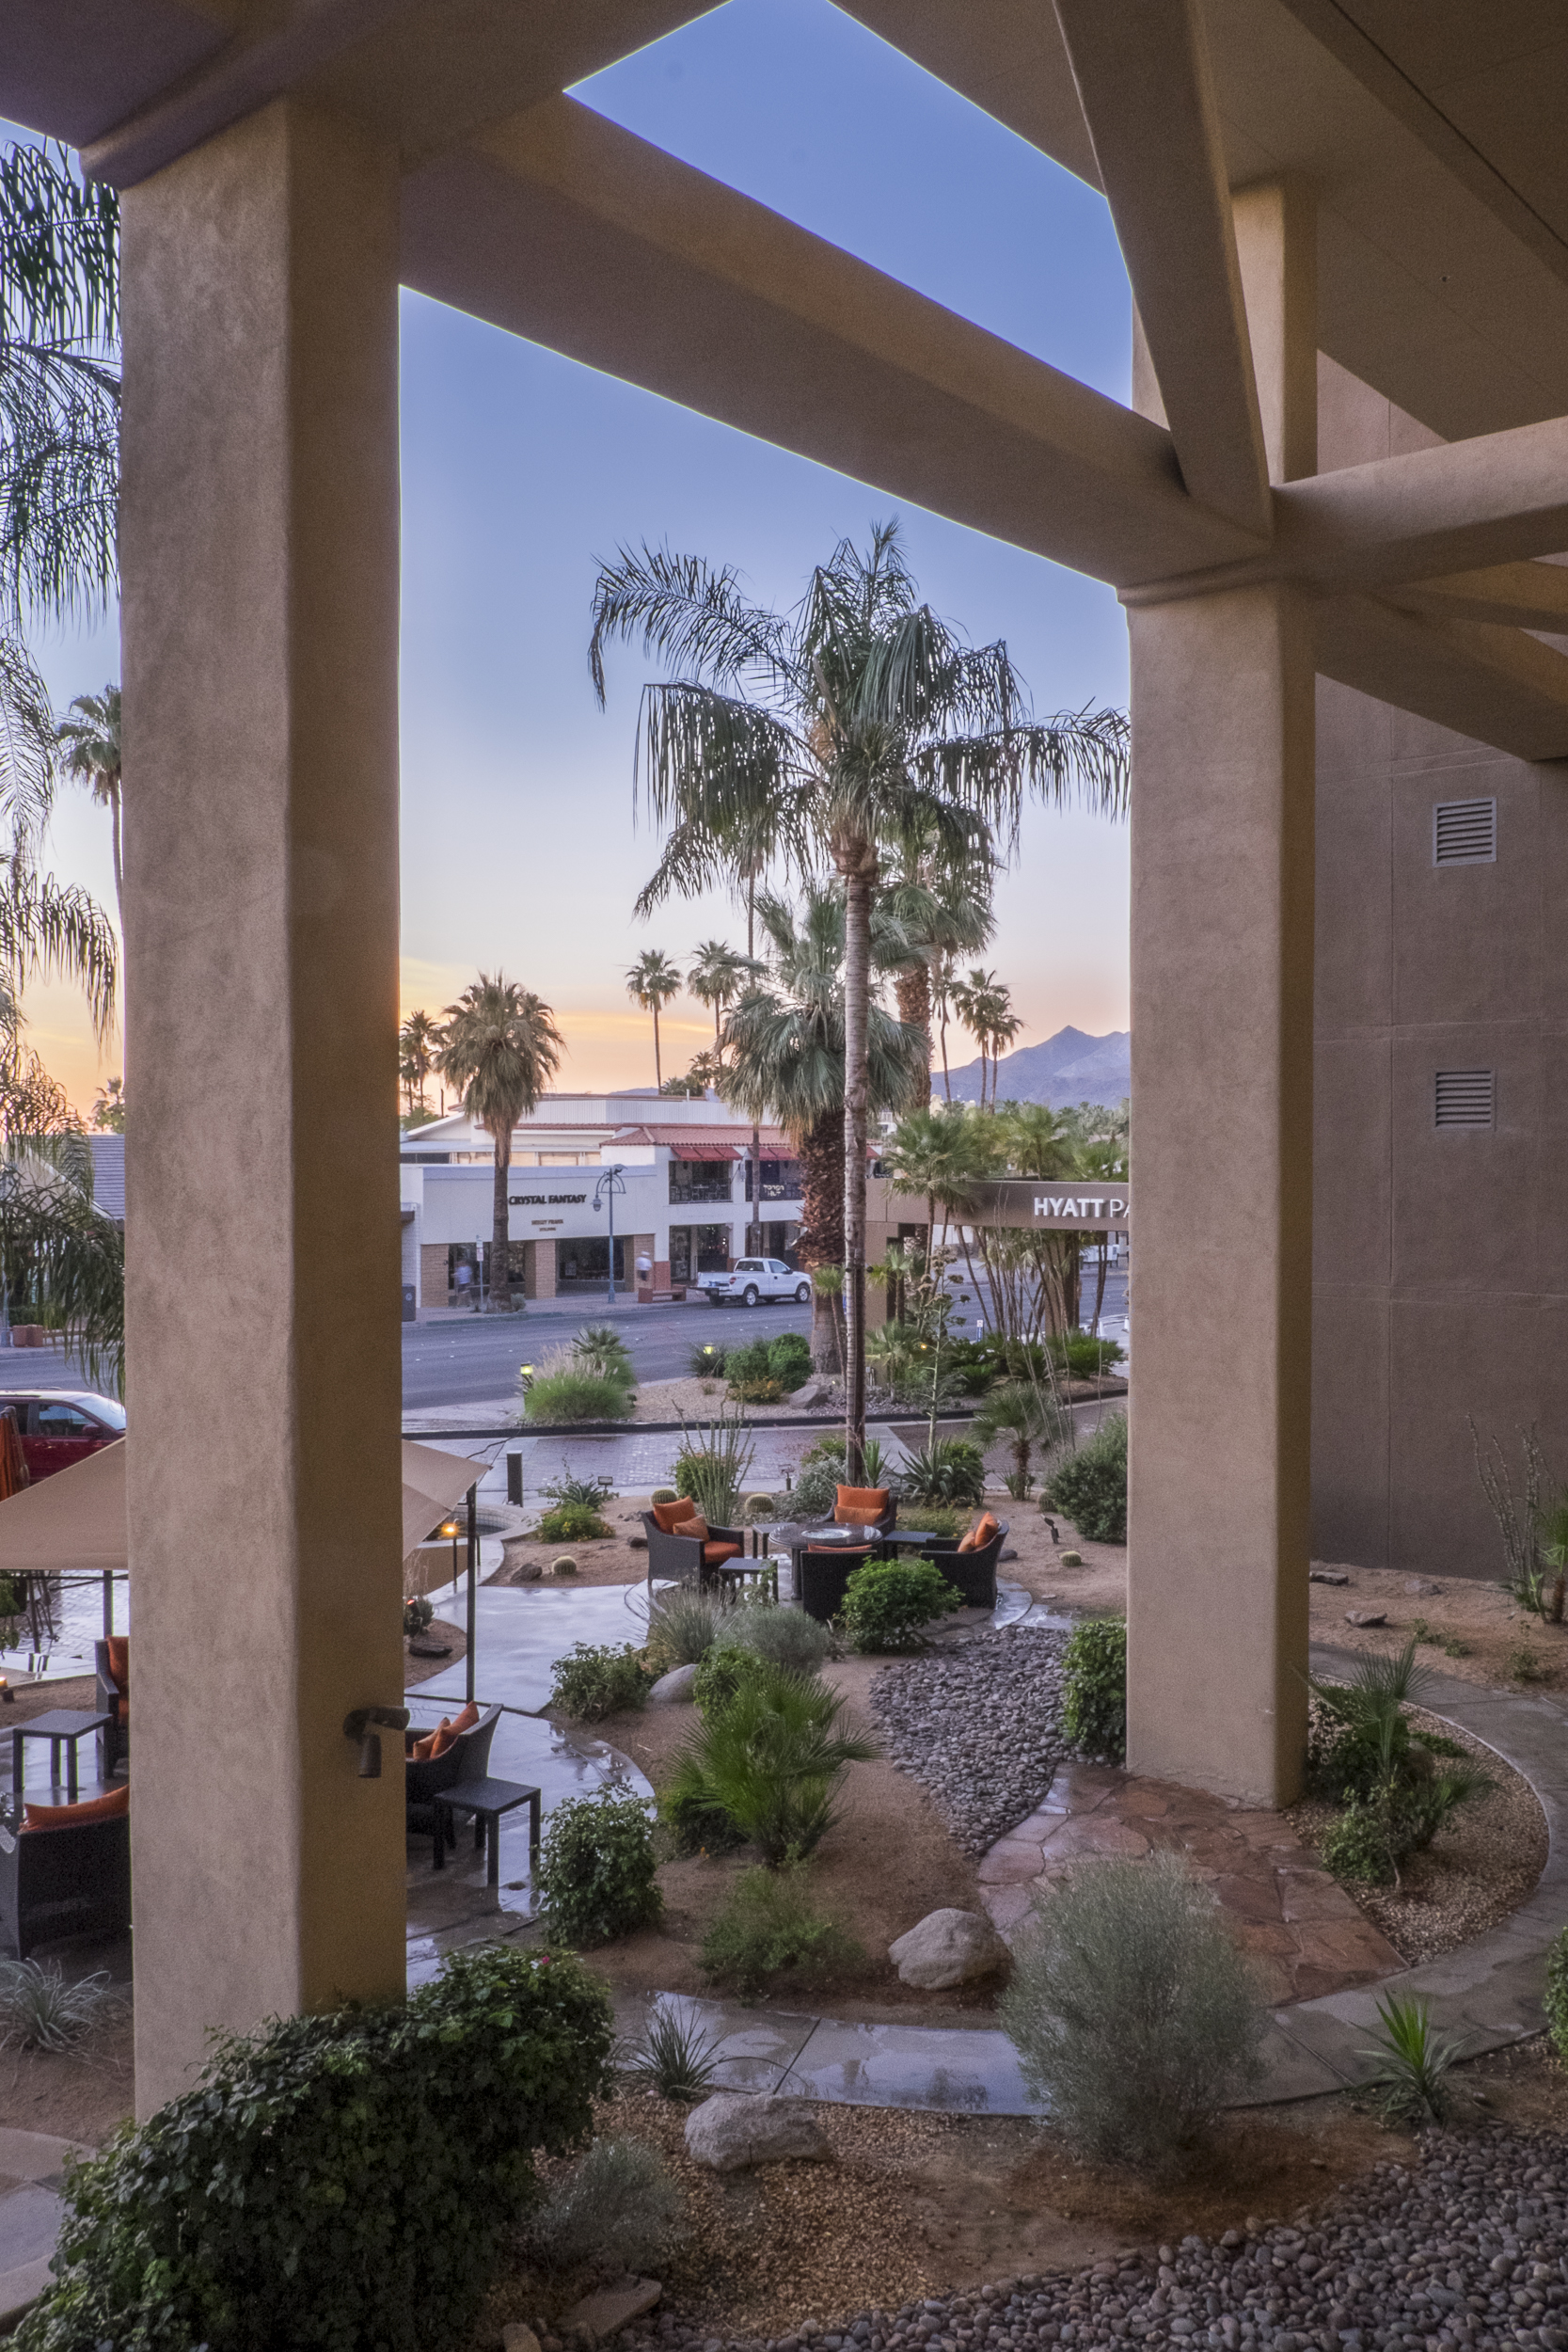 View ot the exterior courtyard of the Hyatt Place Hotel, Palm Springs, CA, USA Copyright © Kipp Baker, All rights reserved.